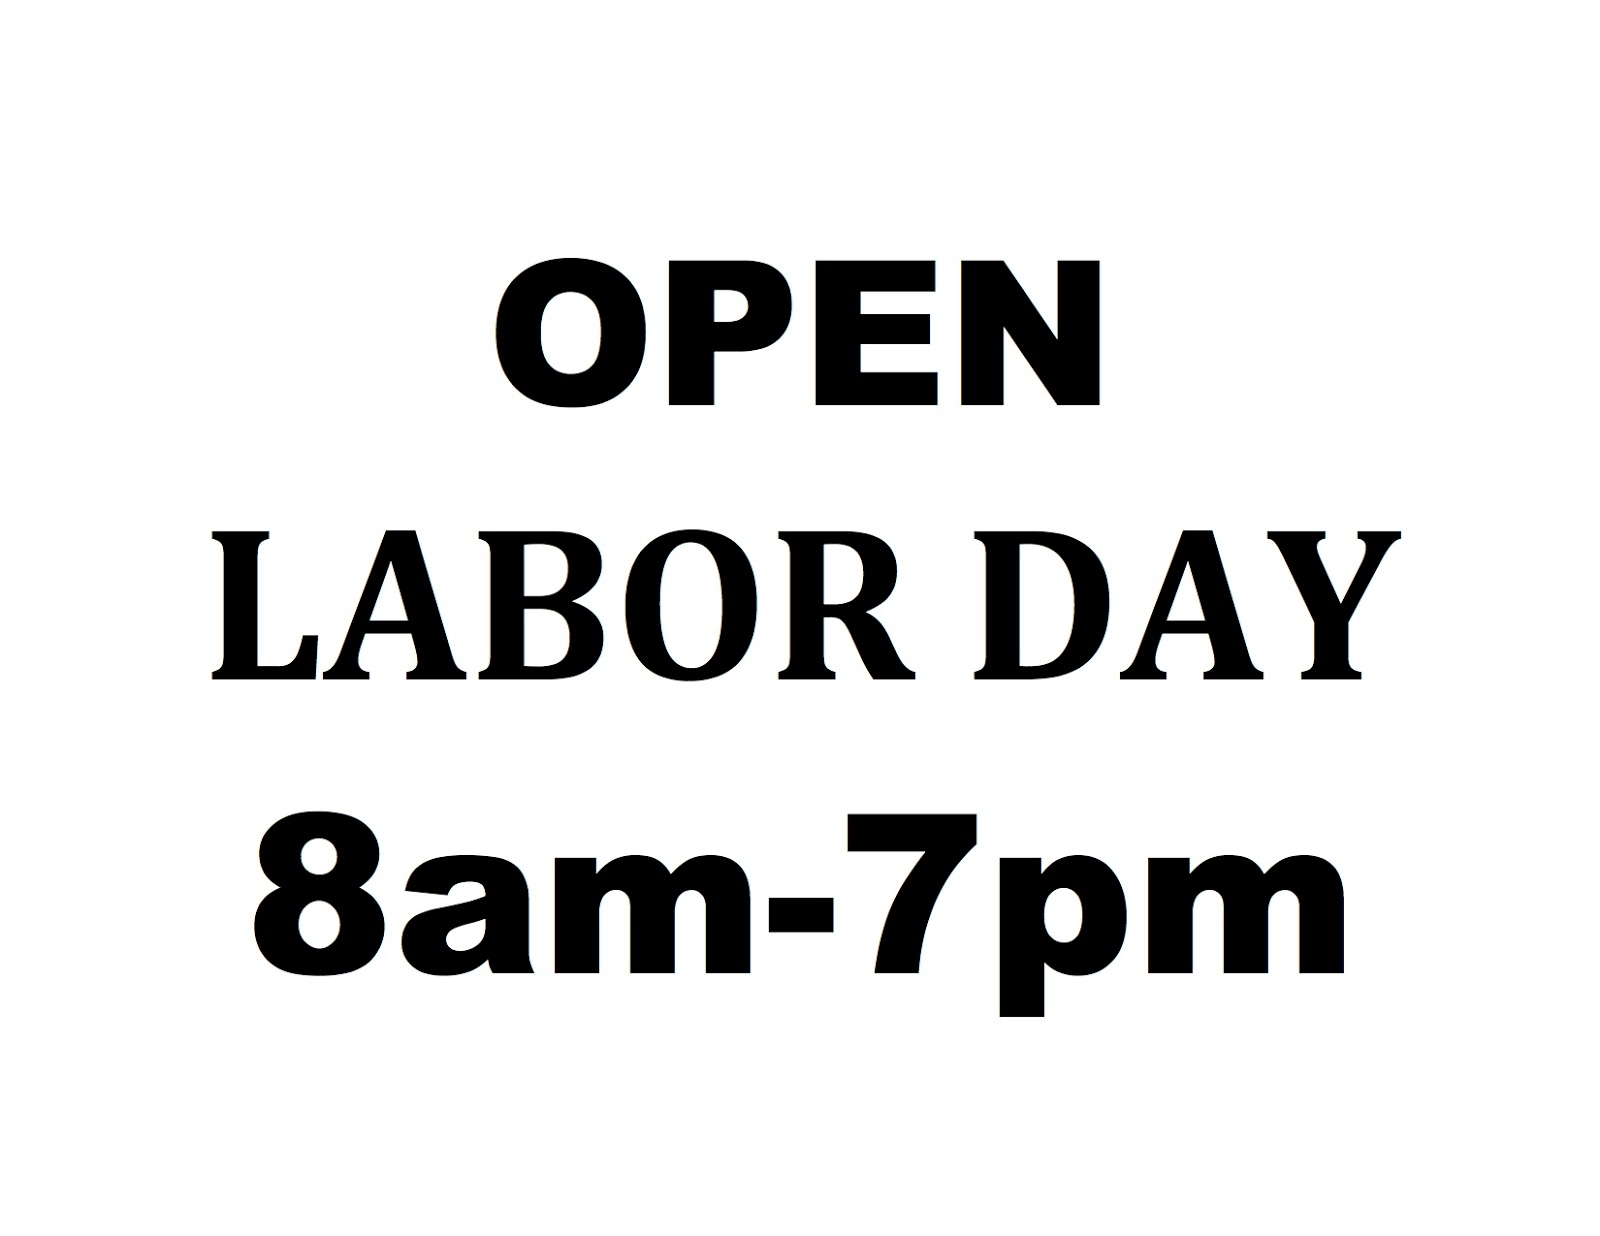 Forex labor day hours